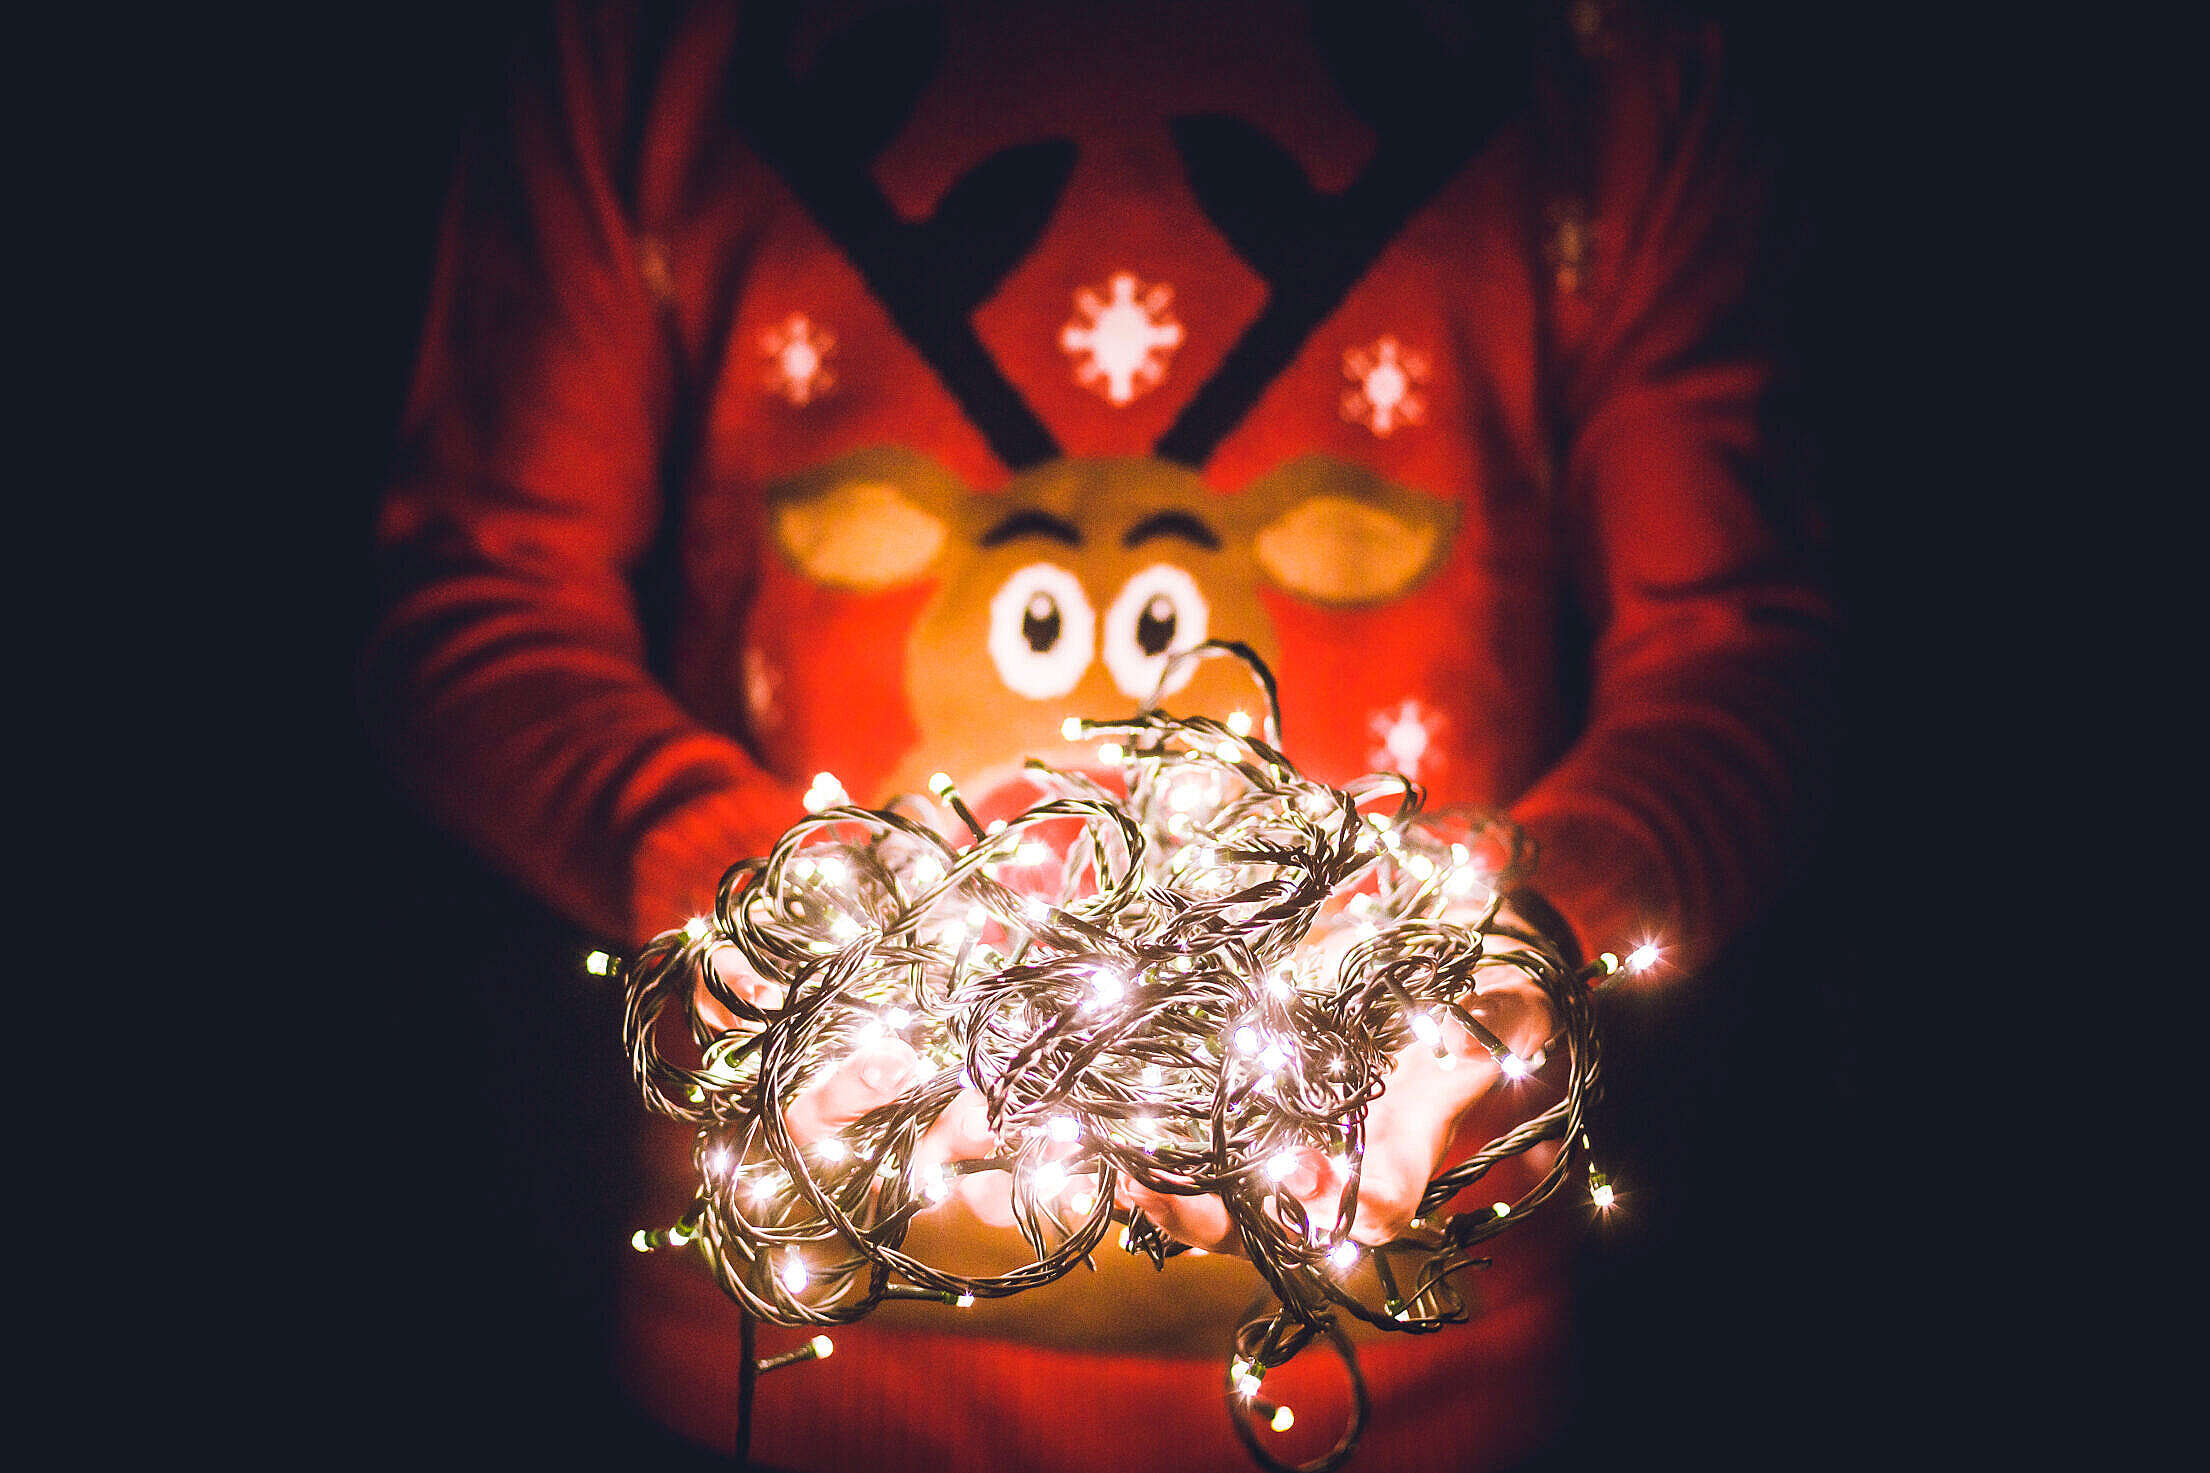 Man in Christmas Sweater Holding Christmas Lights Free Stock Photo